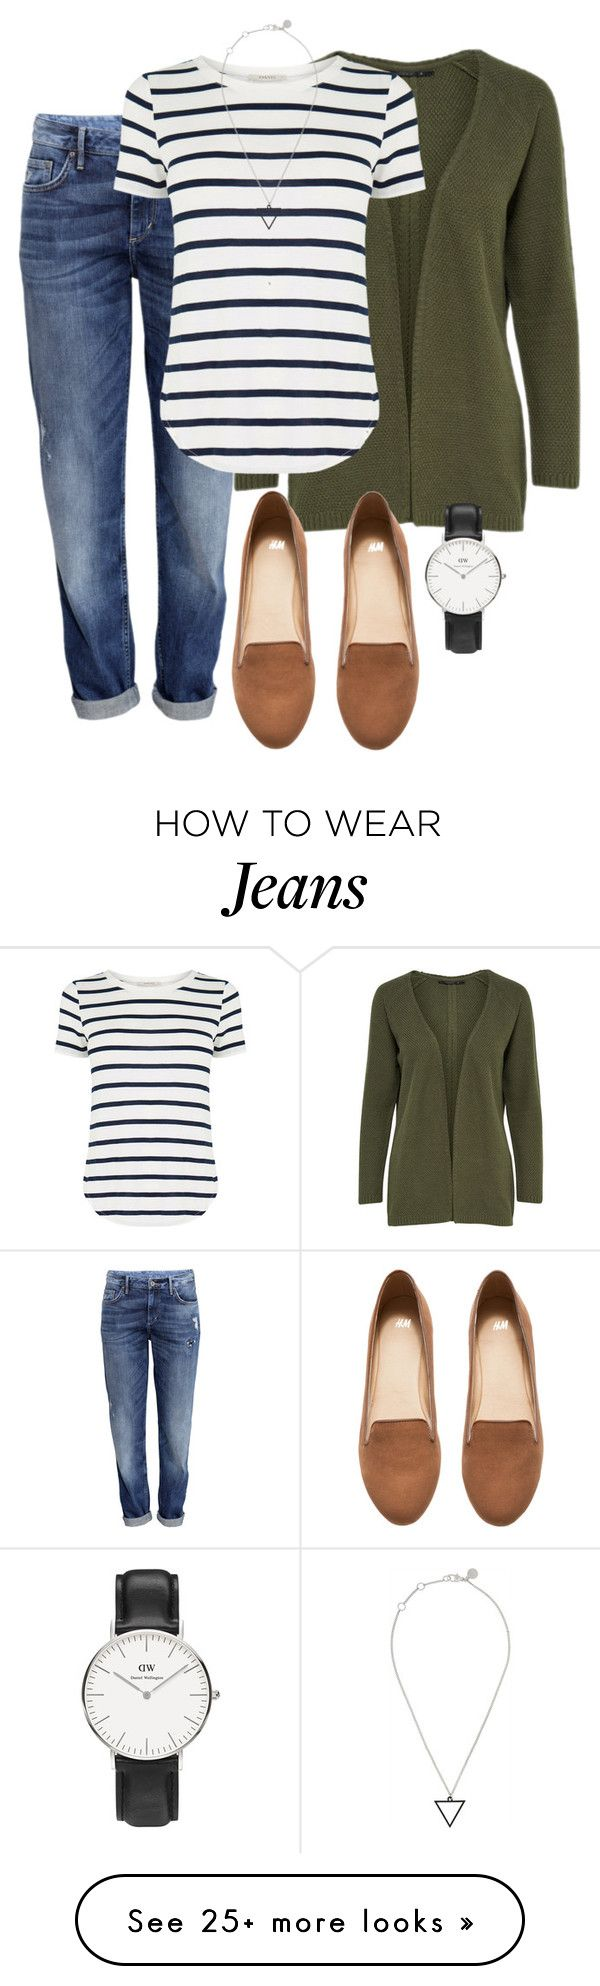 """""""Teaching #6"""" by deliag on Polyvore featuring H&M, Oasis, Marc by Marc Jacobs and Daniel Wellington"""